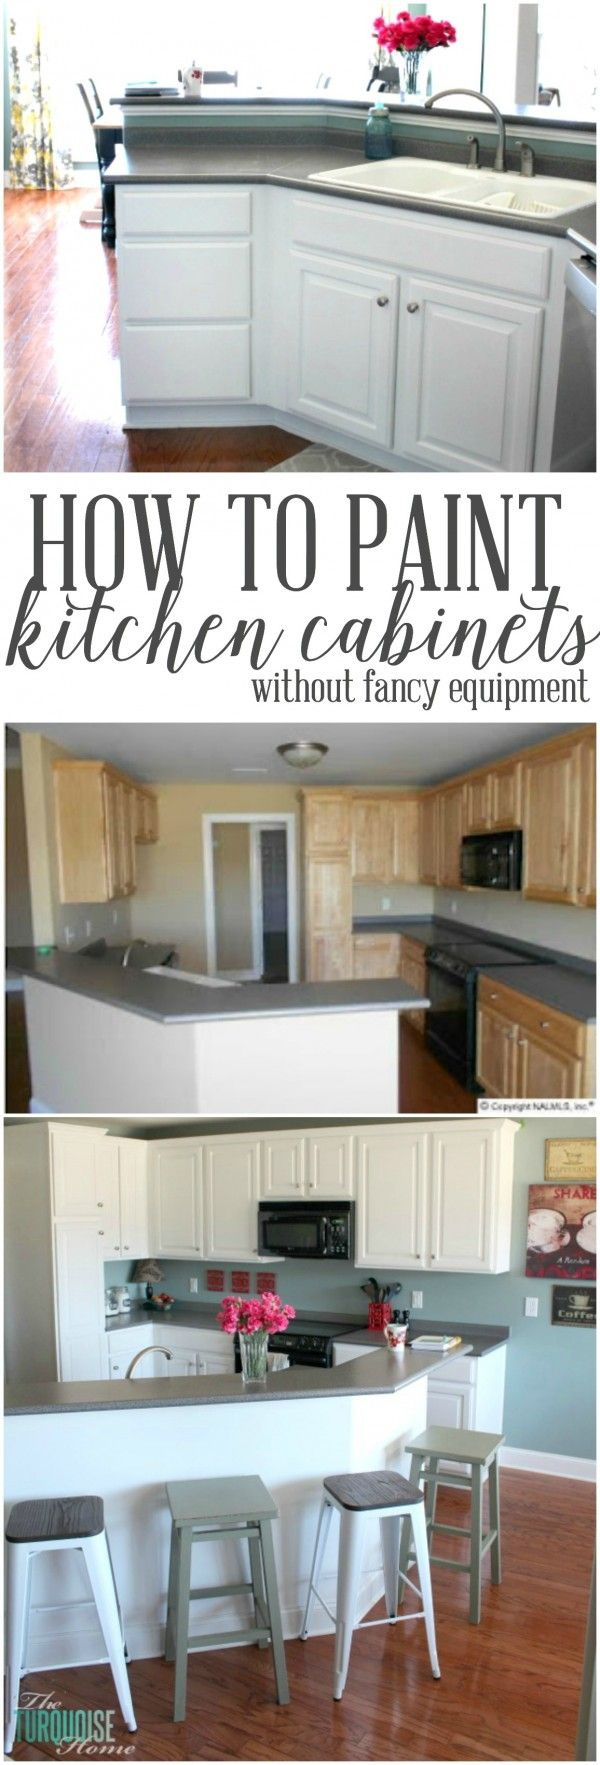 transform old kitchen cabinets 17 best images about your craft on rit 27292